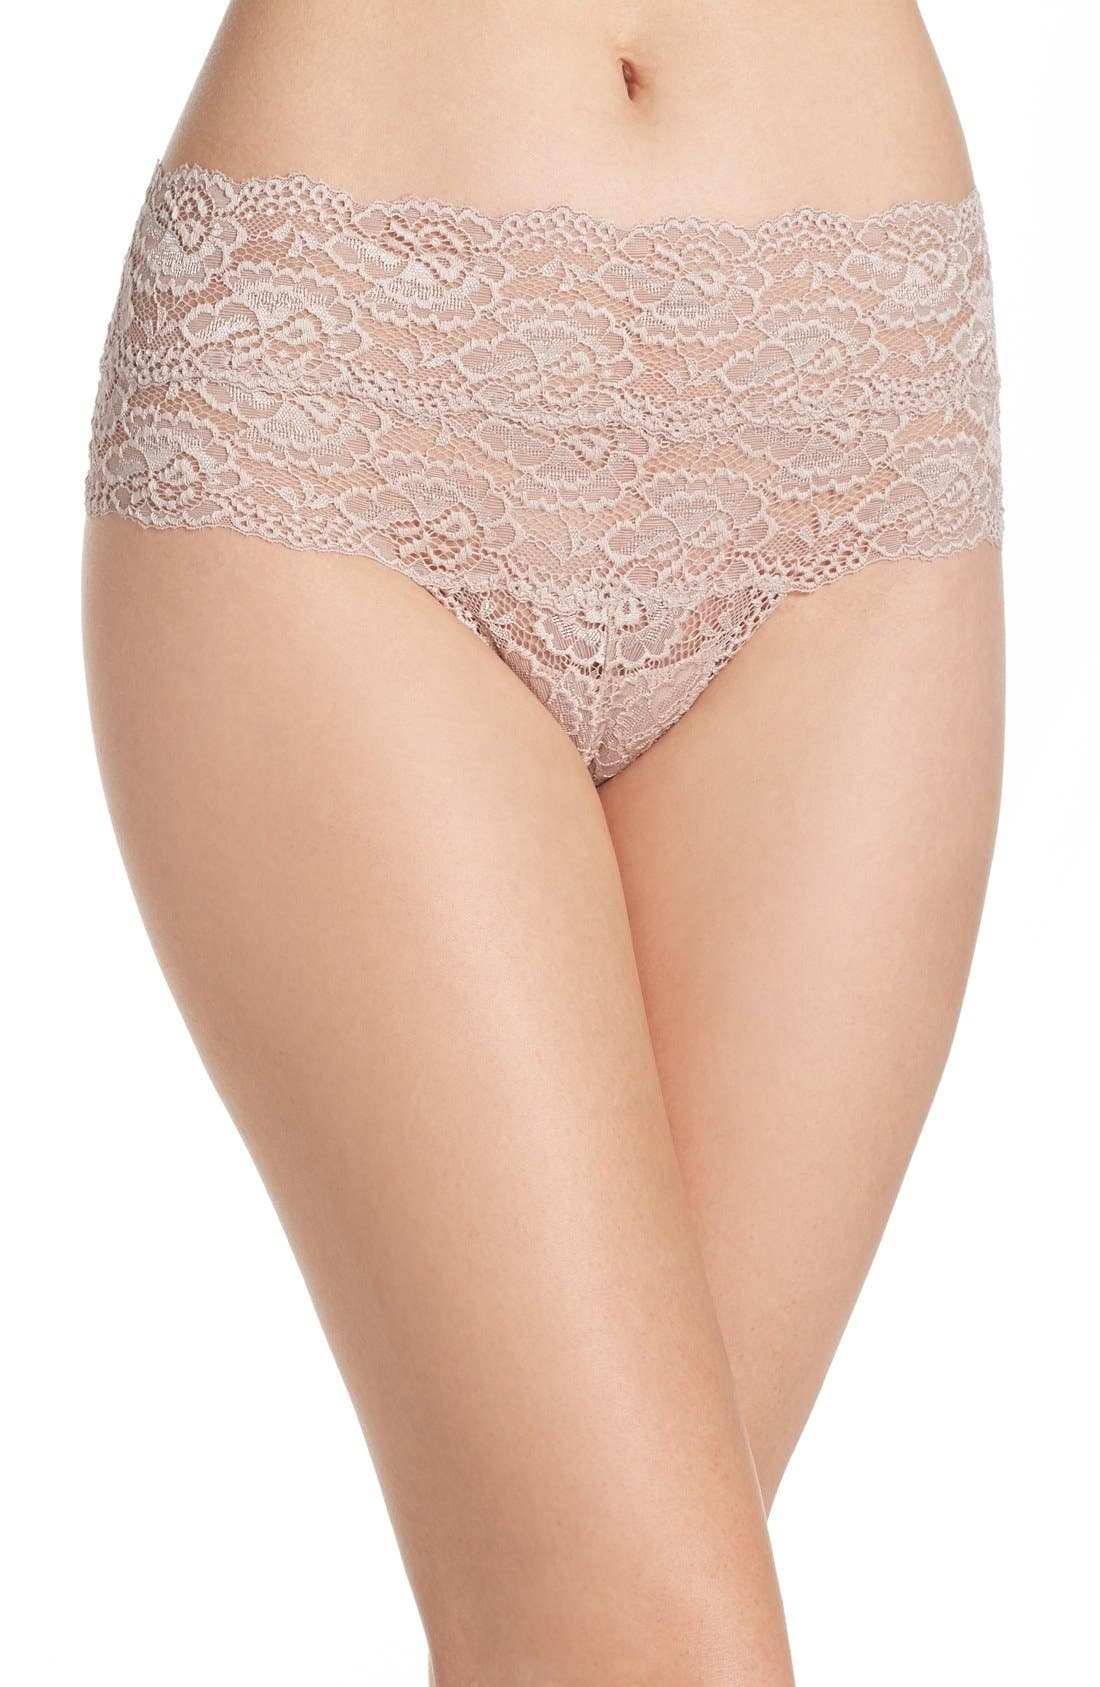 Goddess High Rise Thong,                         Main,                         color, Cashmere